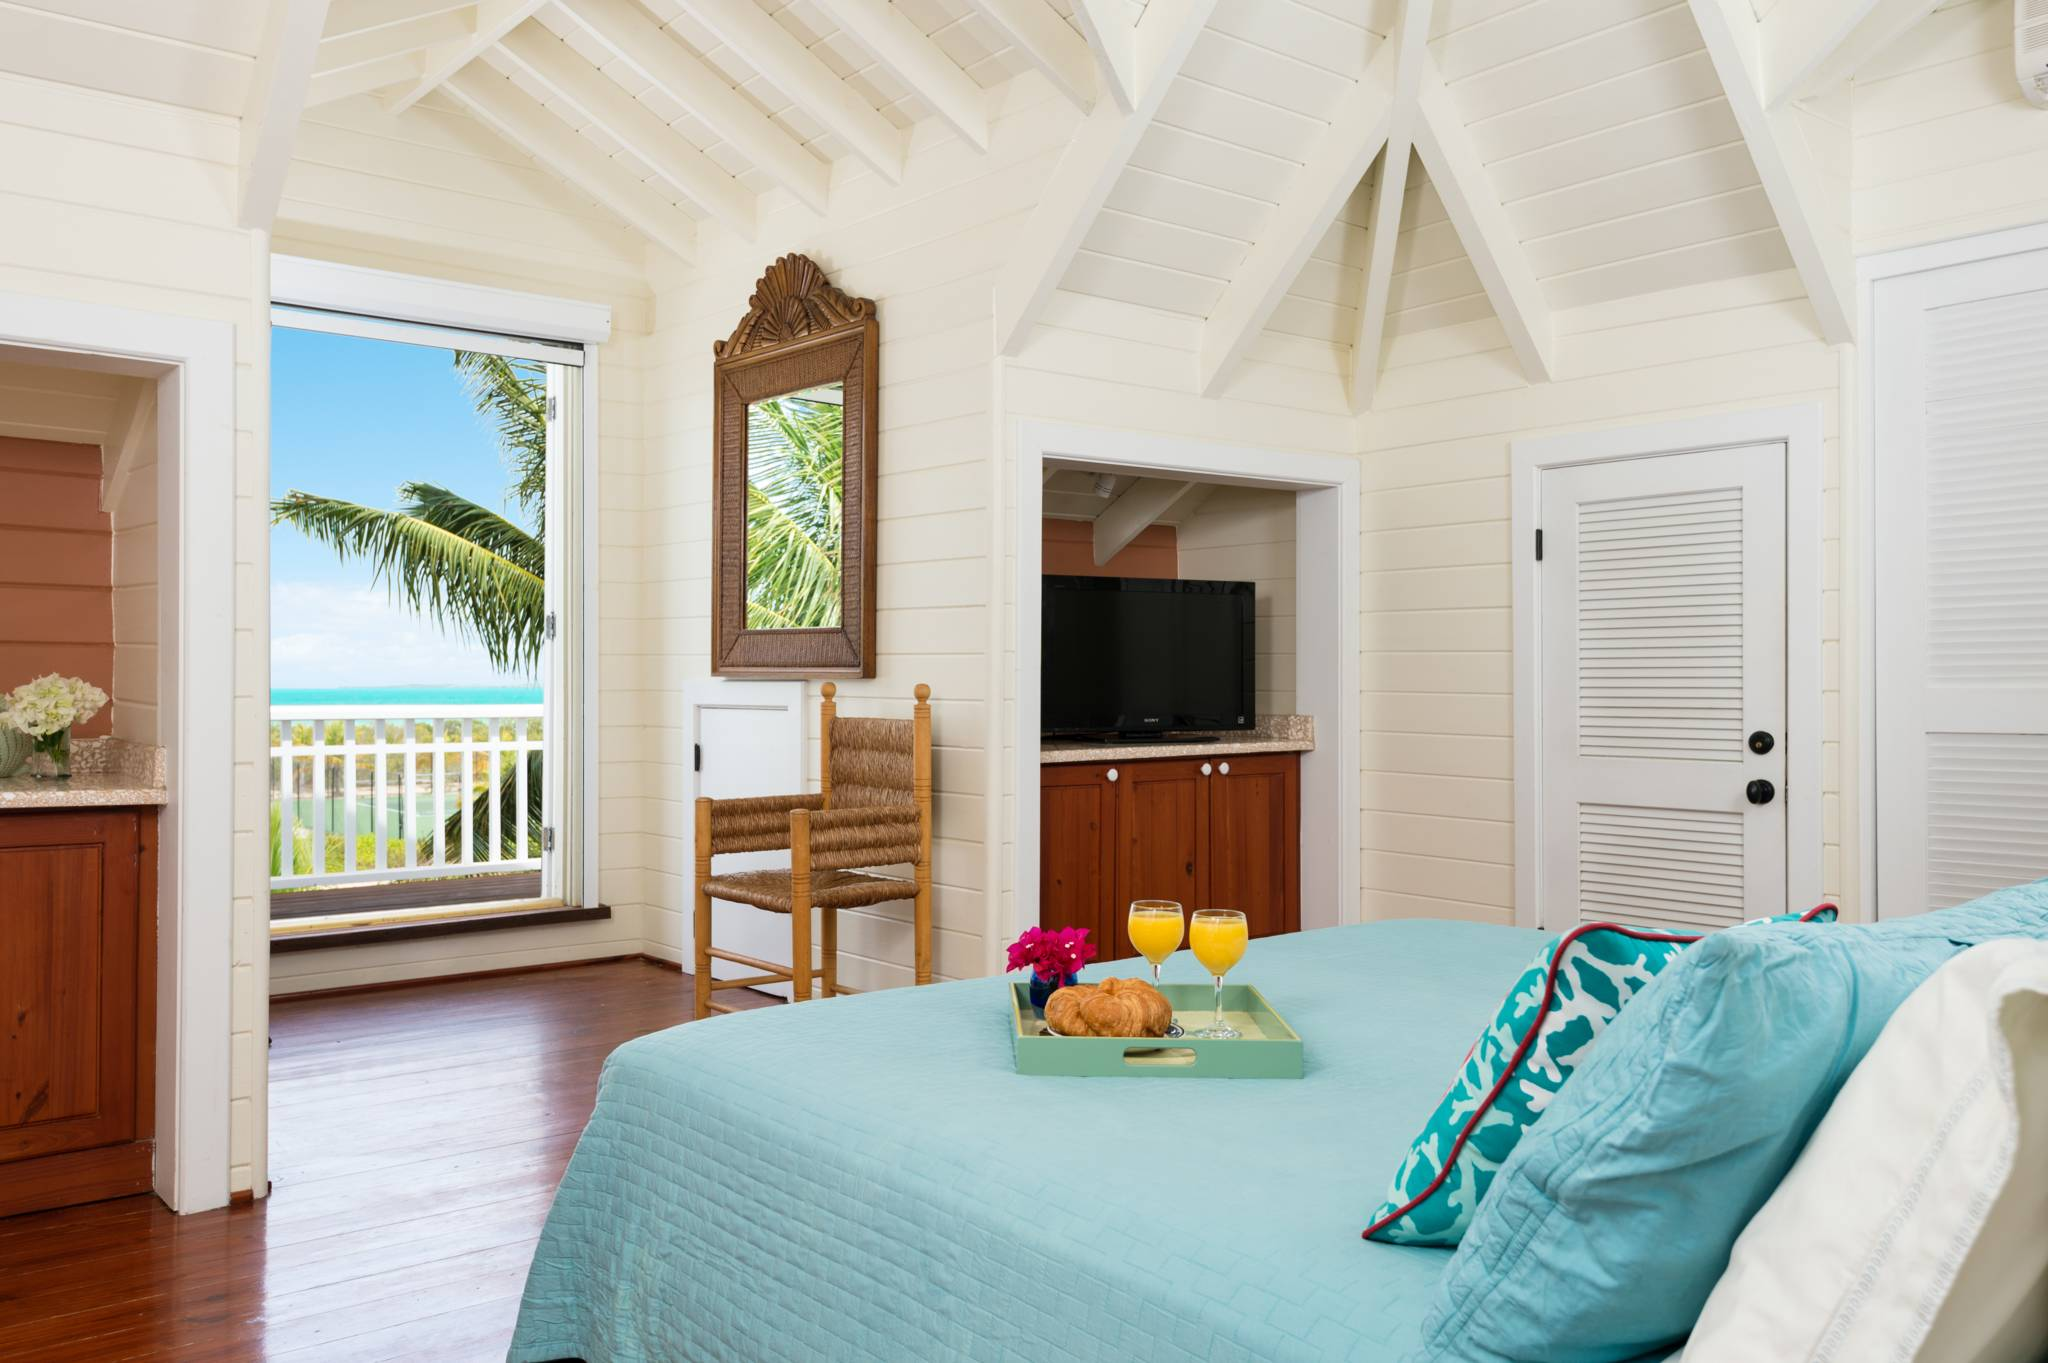 Etoile de Mer is a beautiful 4-bedroom villa for rent on Sunset Bay, Turks and Caicos